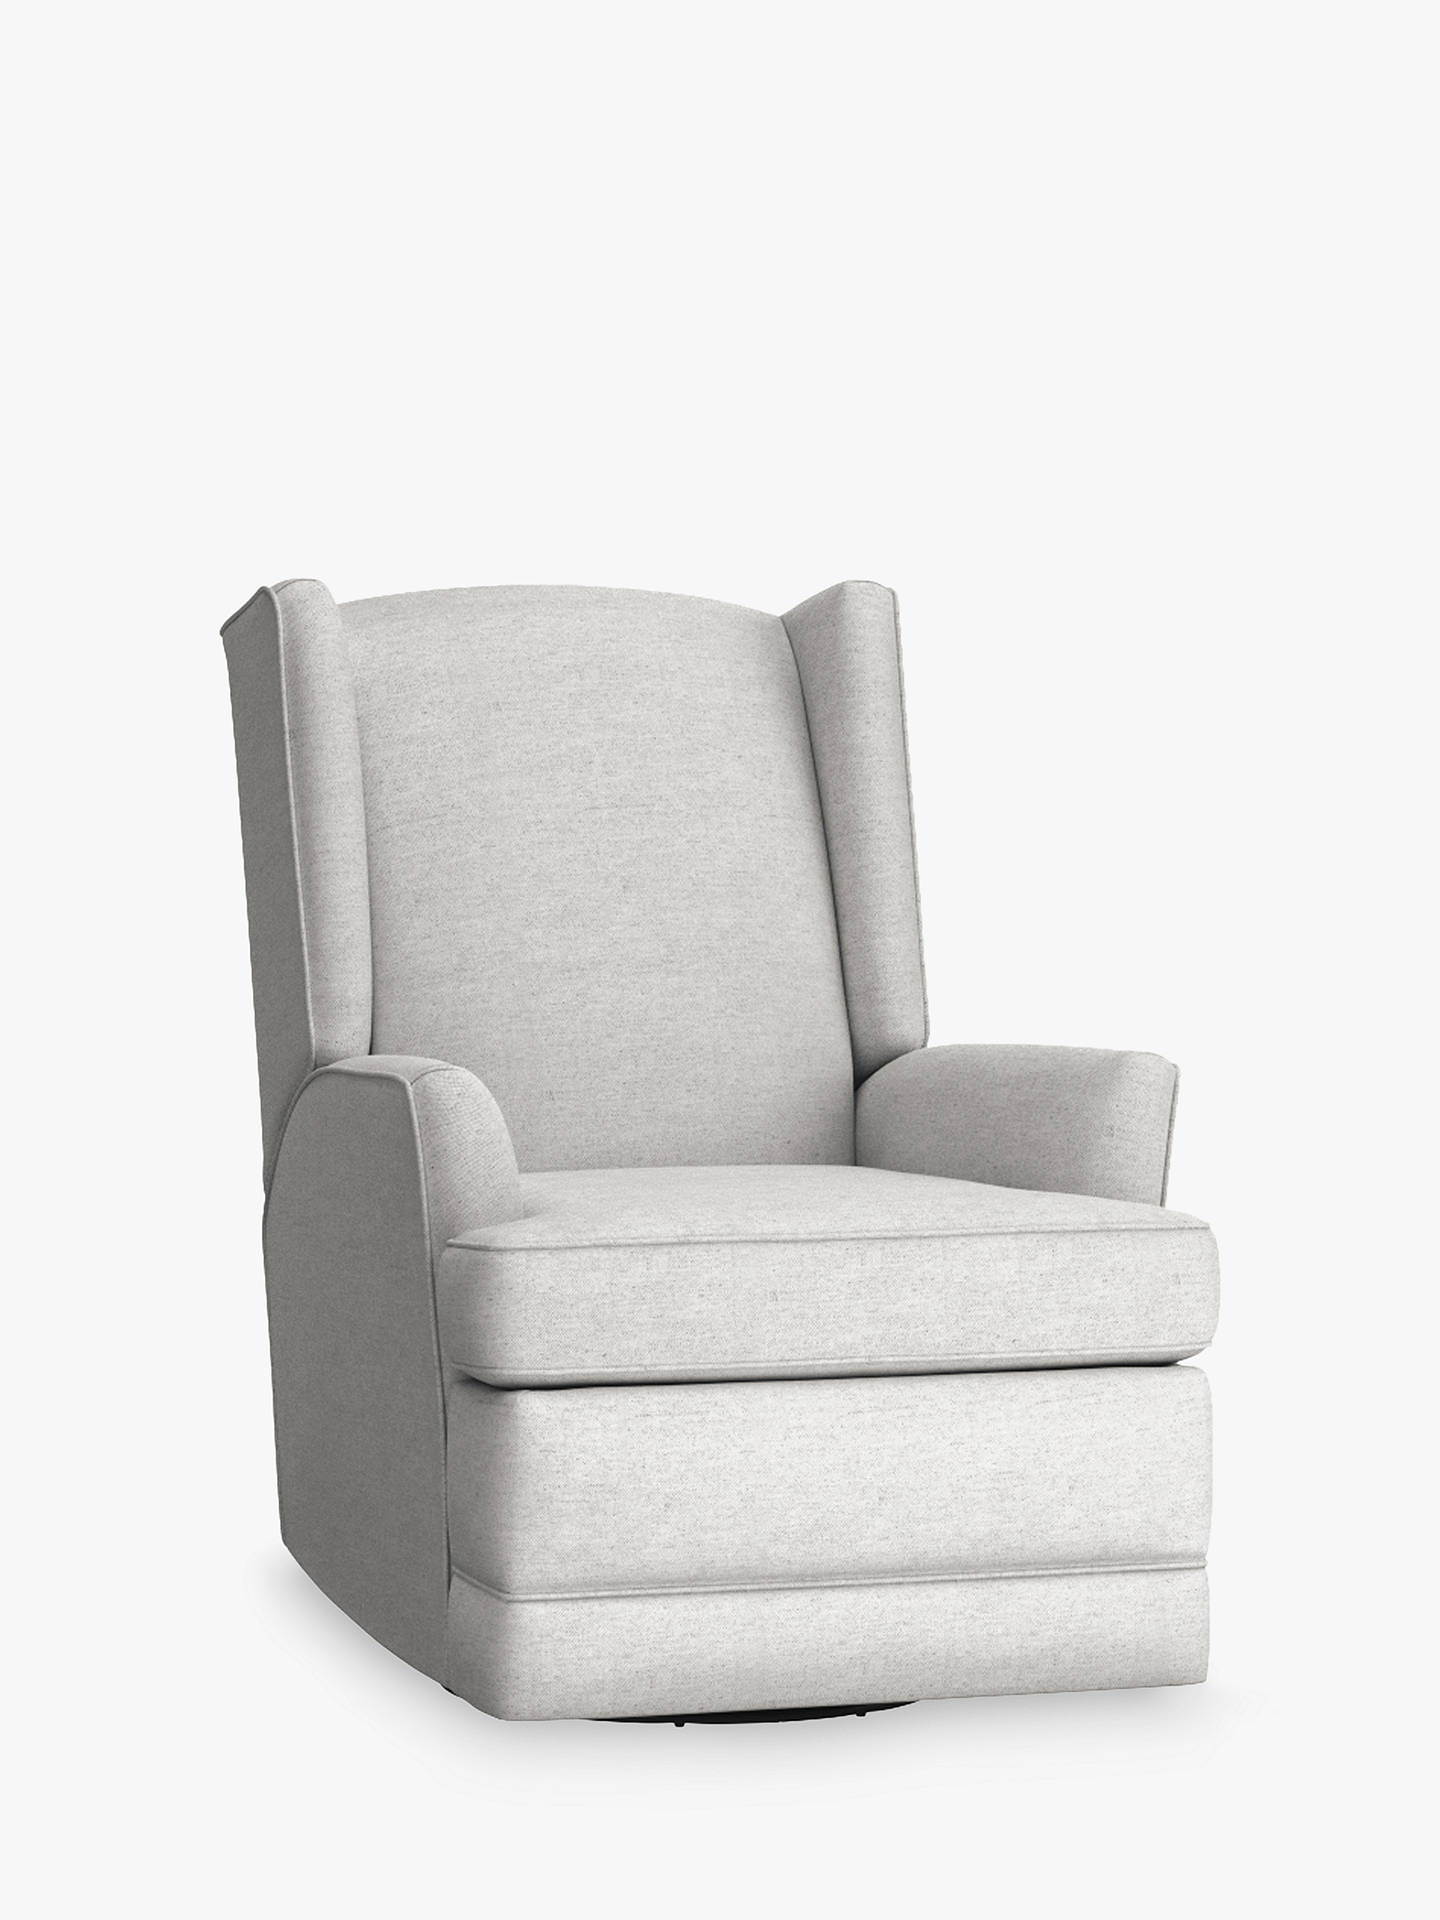 BuyPottery Barn Kids Modern Wingback Reclining Nursing Chair, Ash Online at johnlewis.com